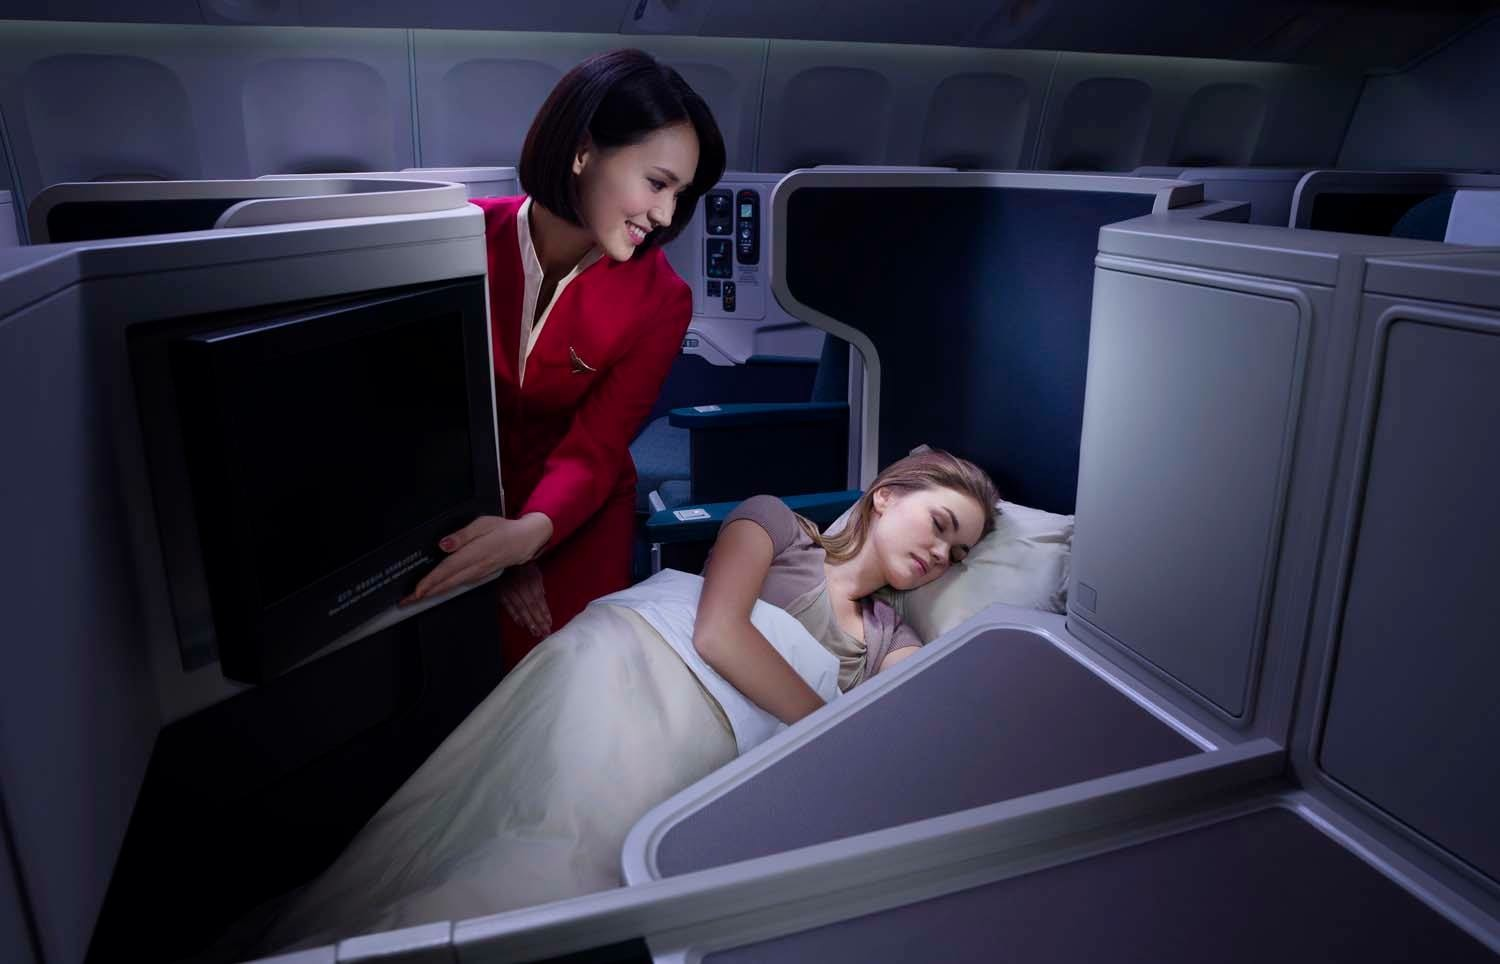 The non-stop Manchester service will feature business class seating.